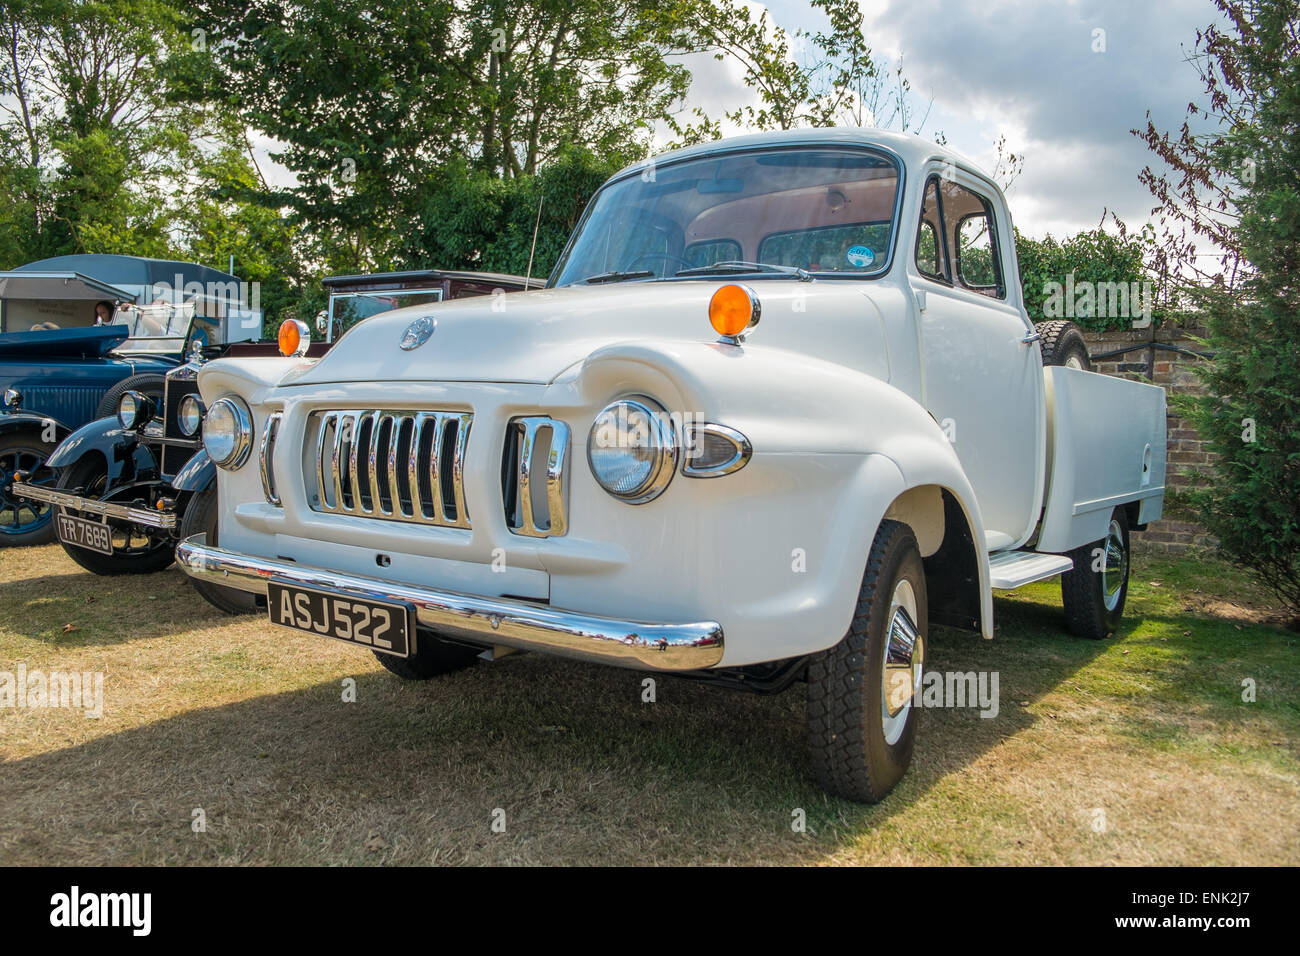 WINDSOR, BERKSHIRE, UK- AUGUST 3, 2014: A White Bedford TJ Classic Truck on show at a Classic Car Show in August - Stock Image